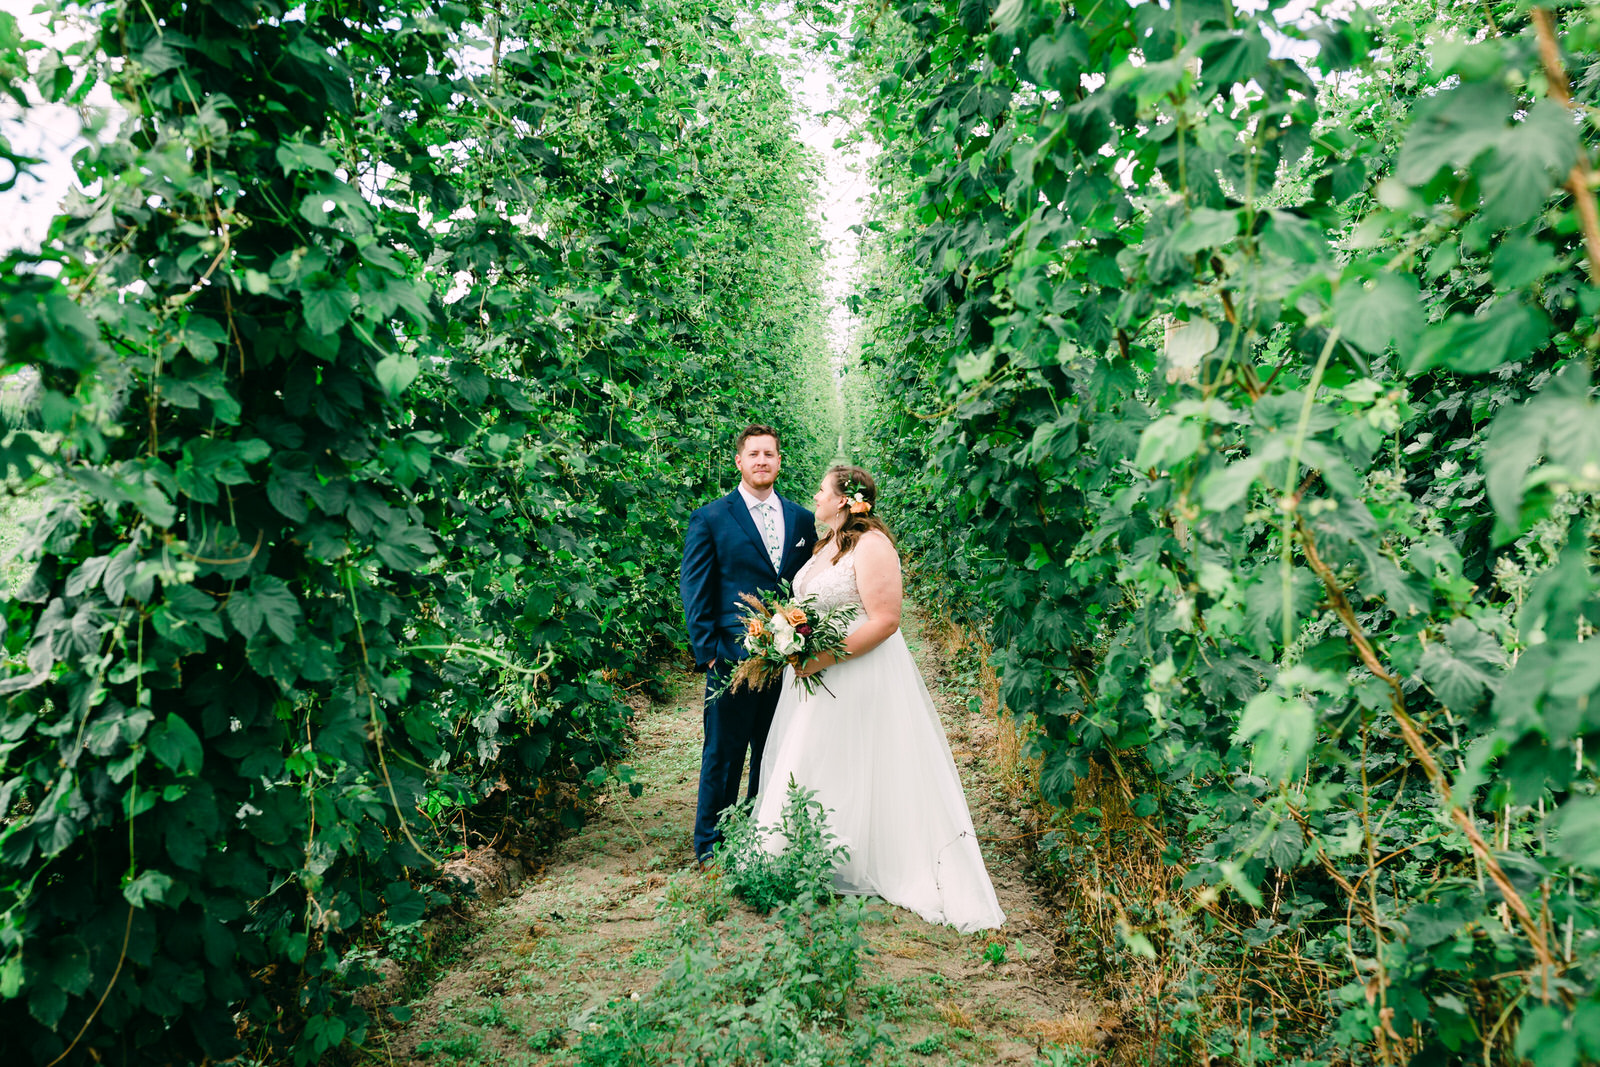 Portrait of a bride & groom in a garden